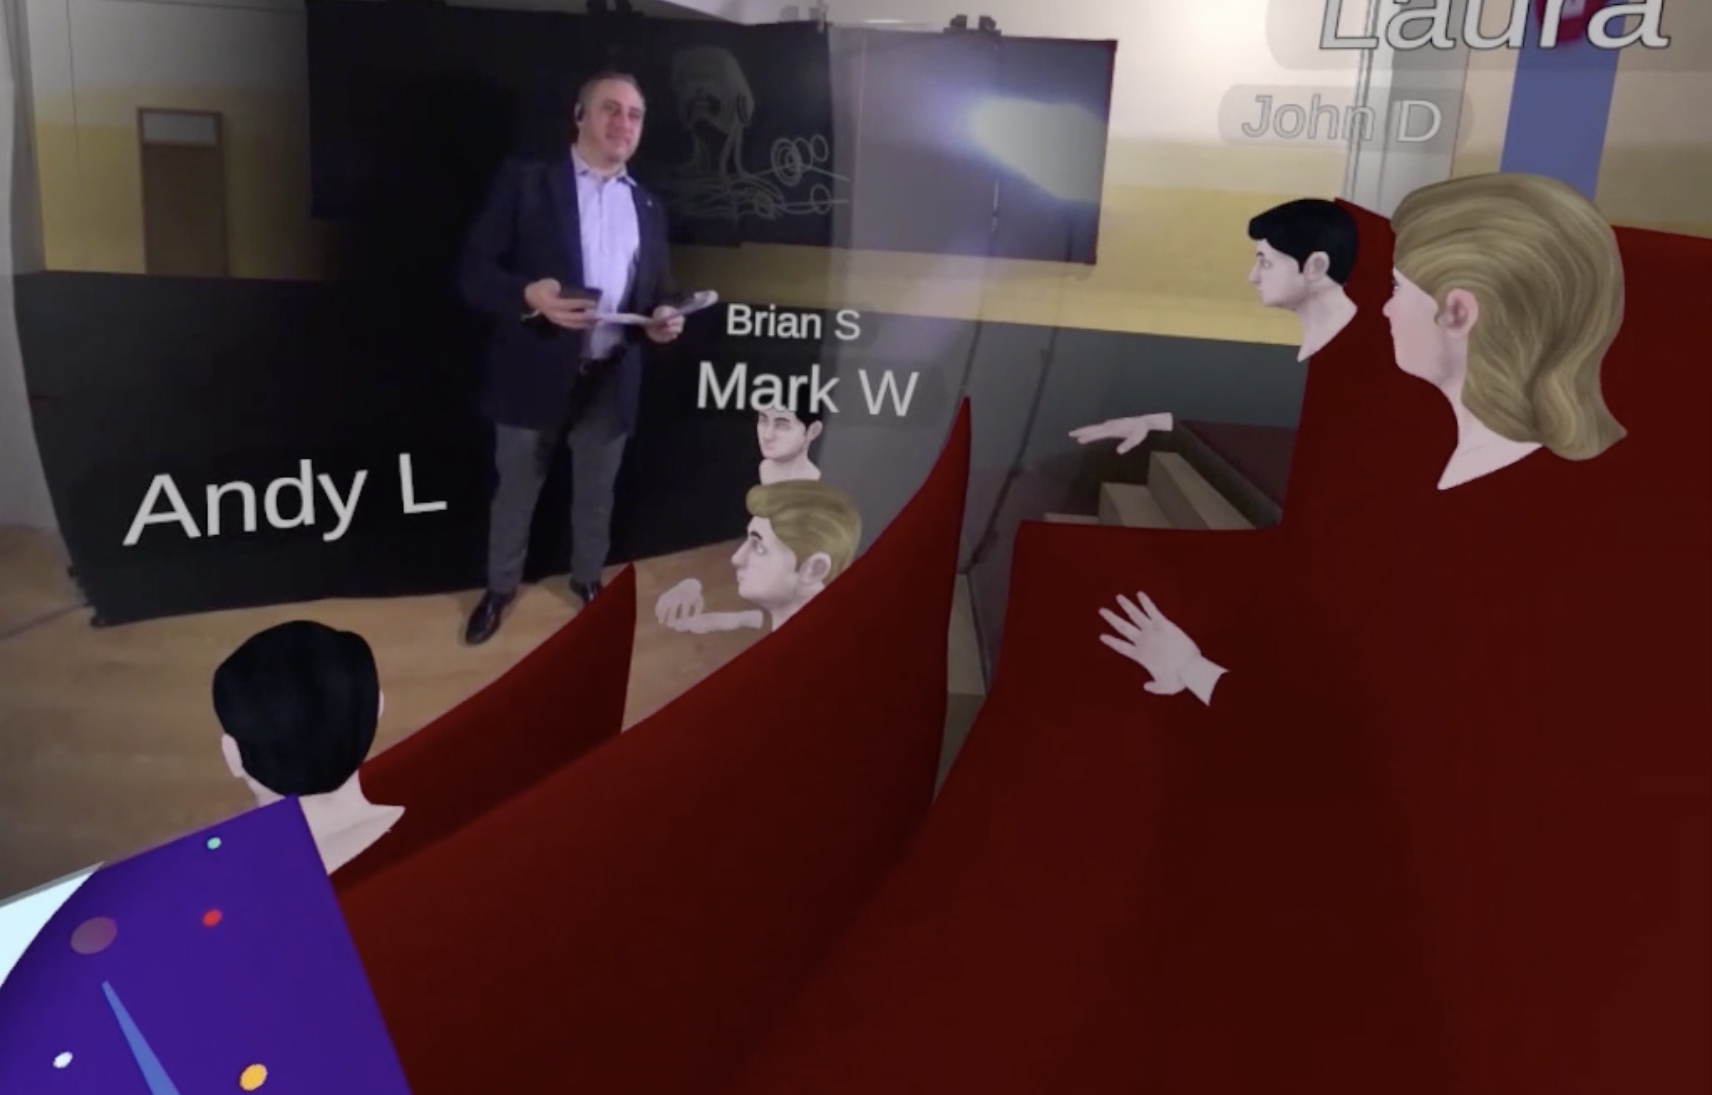 Using VR technology, Temple University created a VR class where students are avatars and each lesson includes a live stream lecture with the professor.